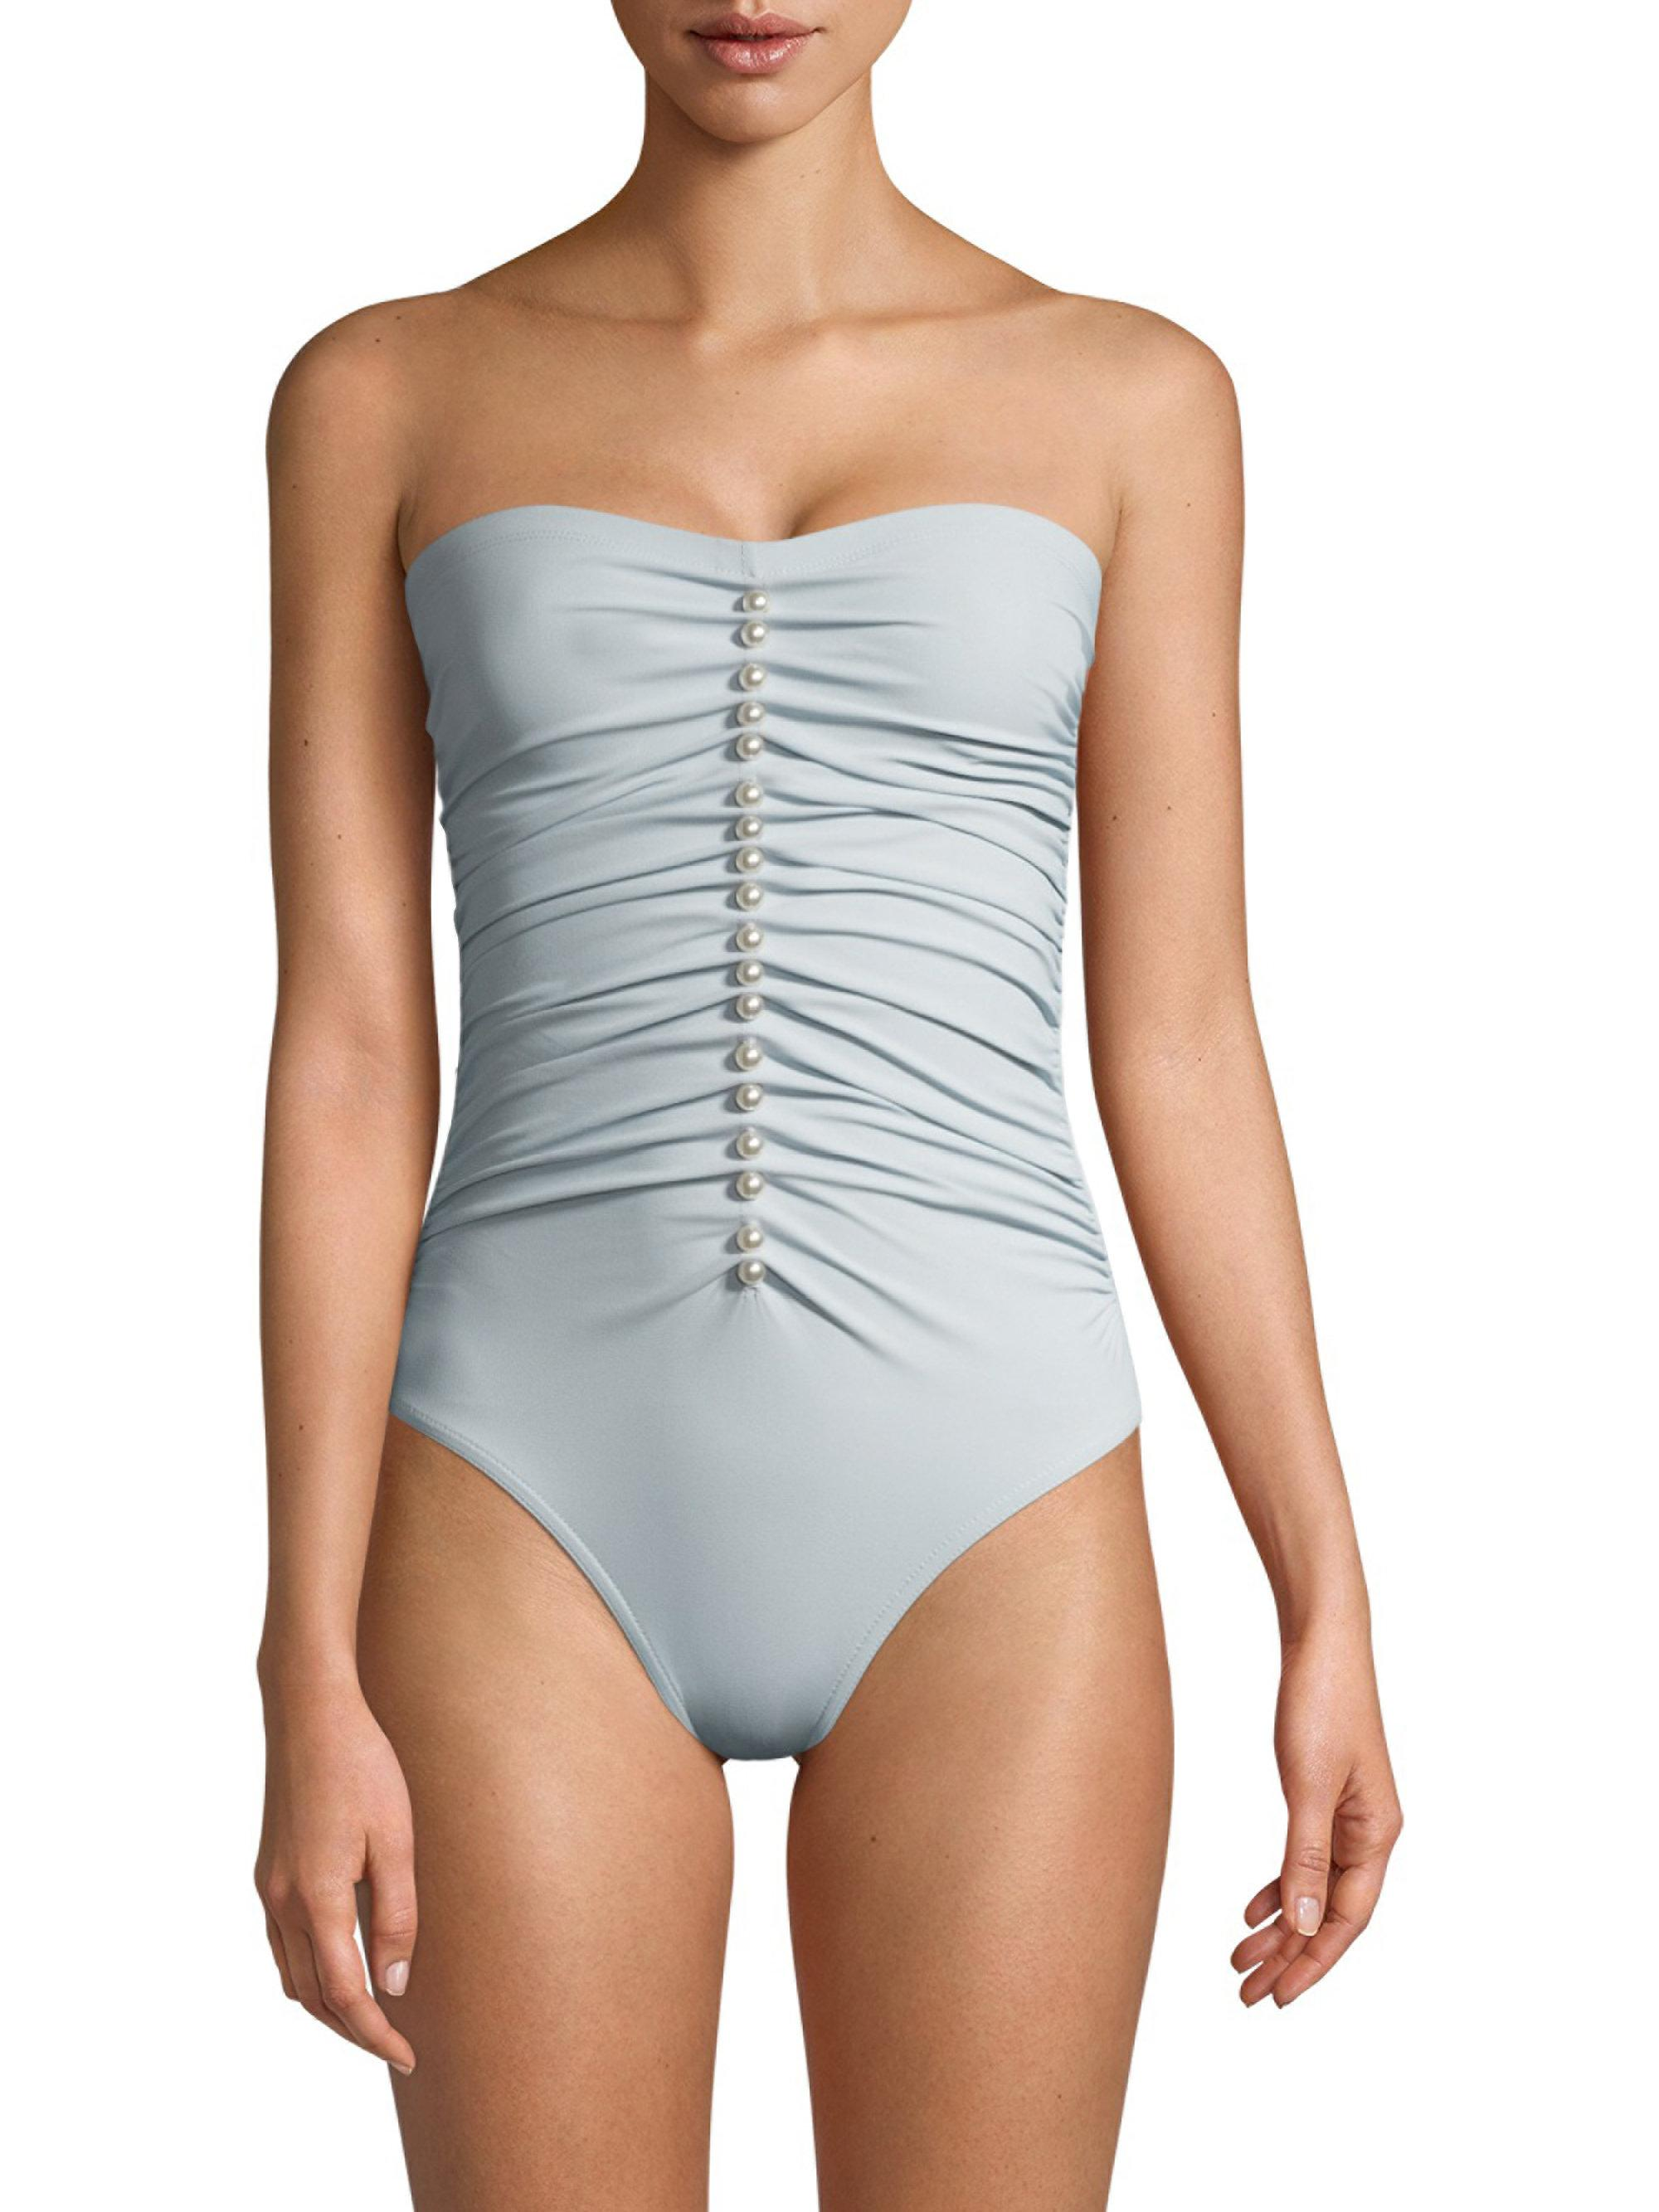 Amma one-piece swimsuit Karla Colletto Great Deals Cheap Online Fake Sale Online kHYZoO3